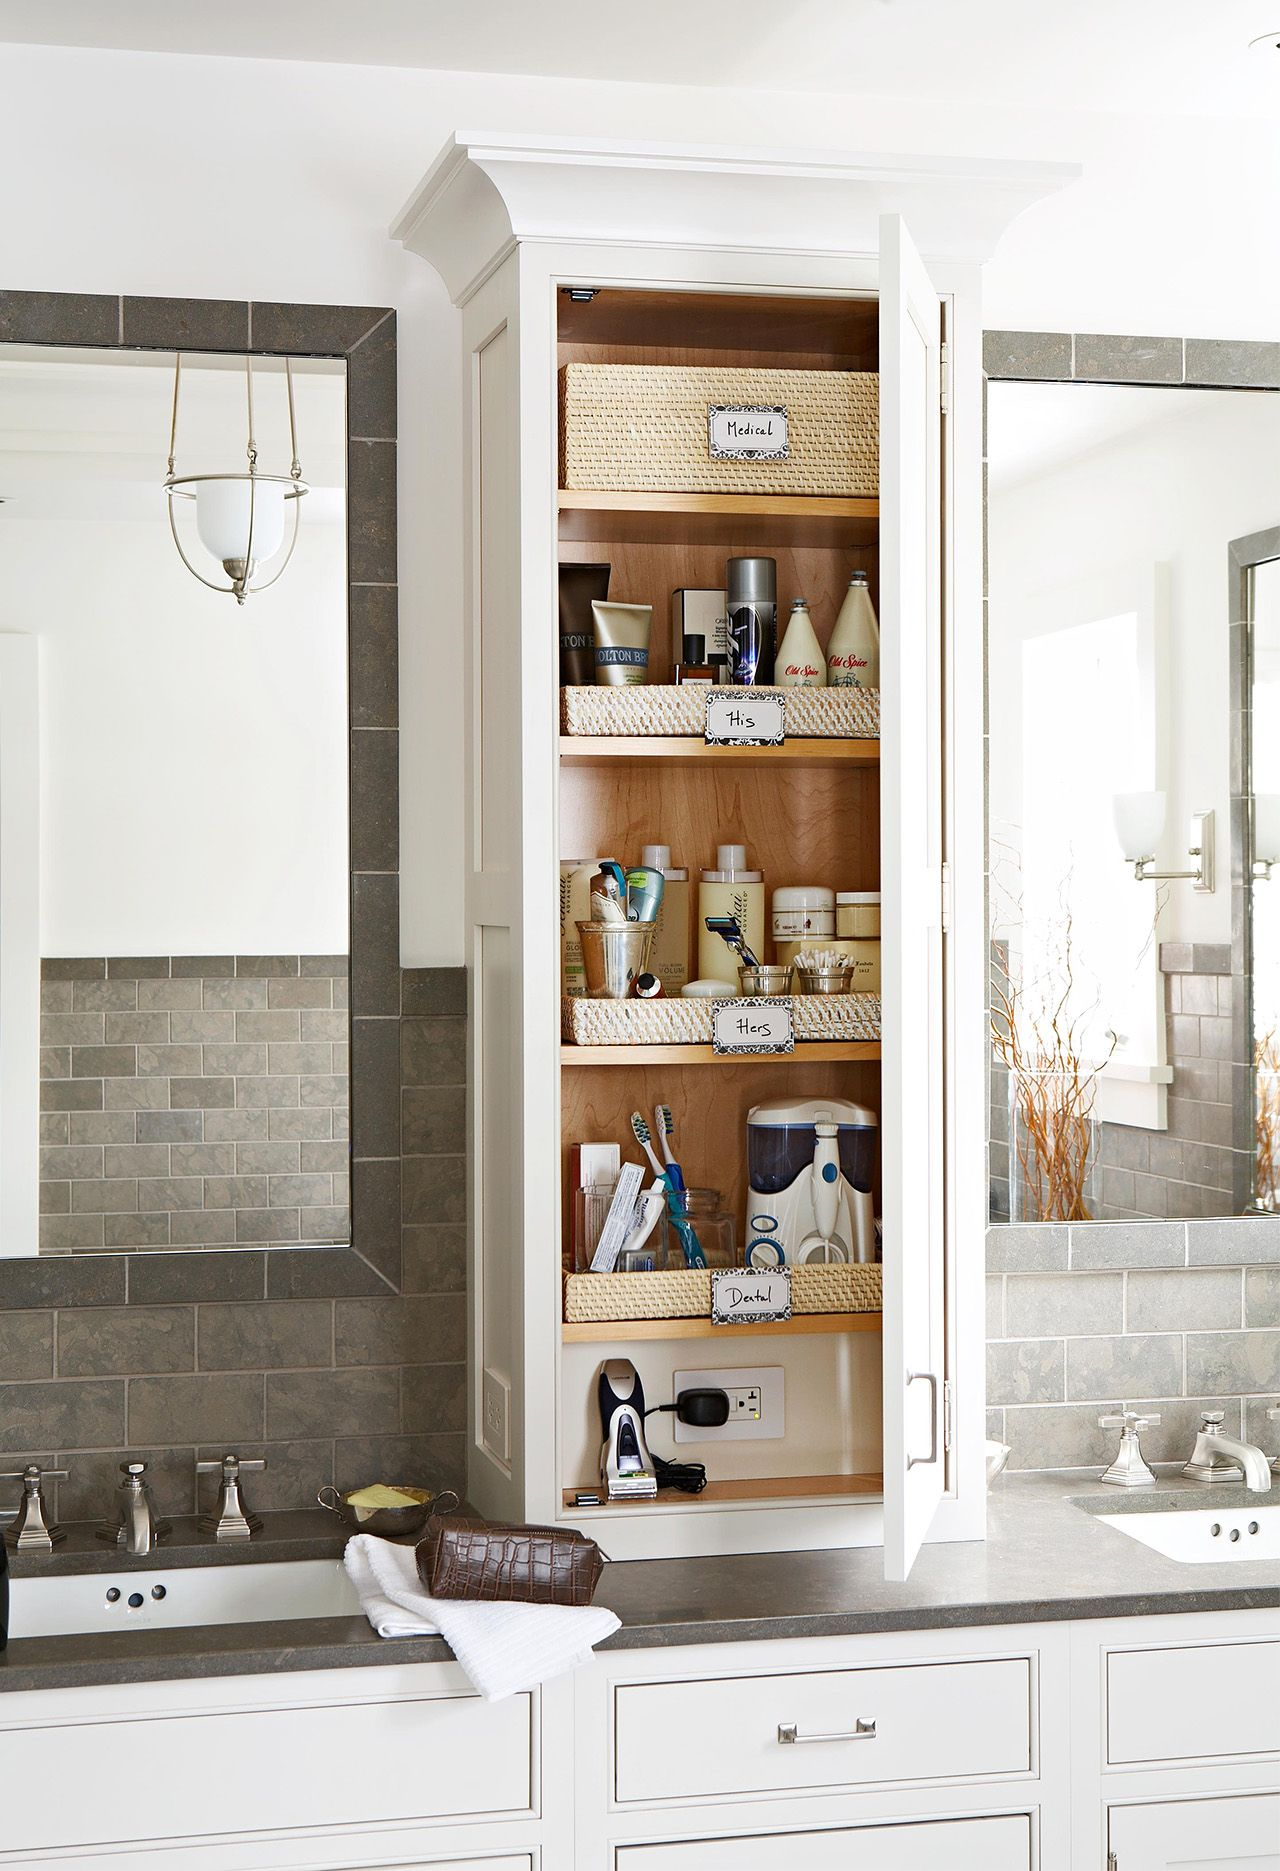 19 Clever Ways To Organize Bathroom Cabinets For A Quicker Morning Routine In 2020 Cheap Bathroom Remodel Organize Bathroom Countertop Bathroom Vanity Storage